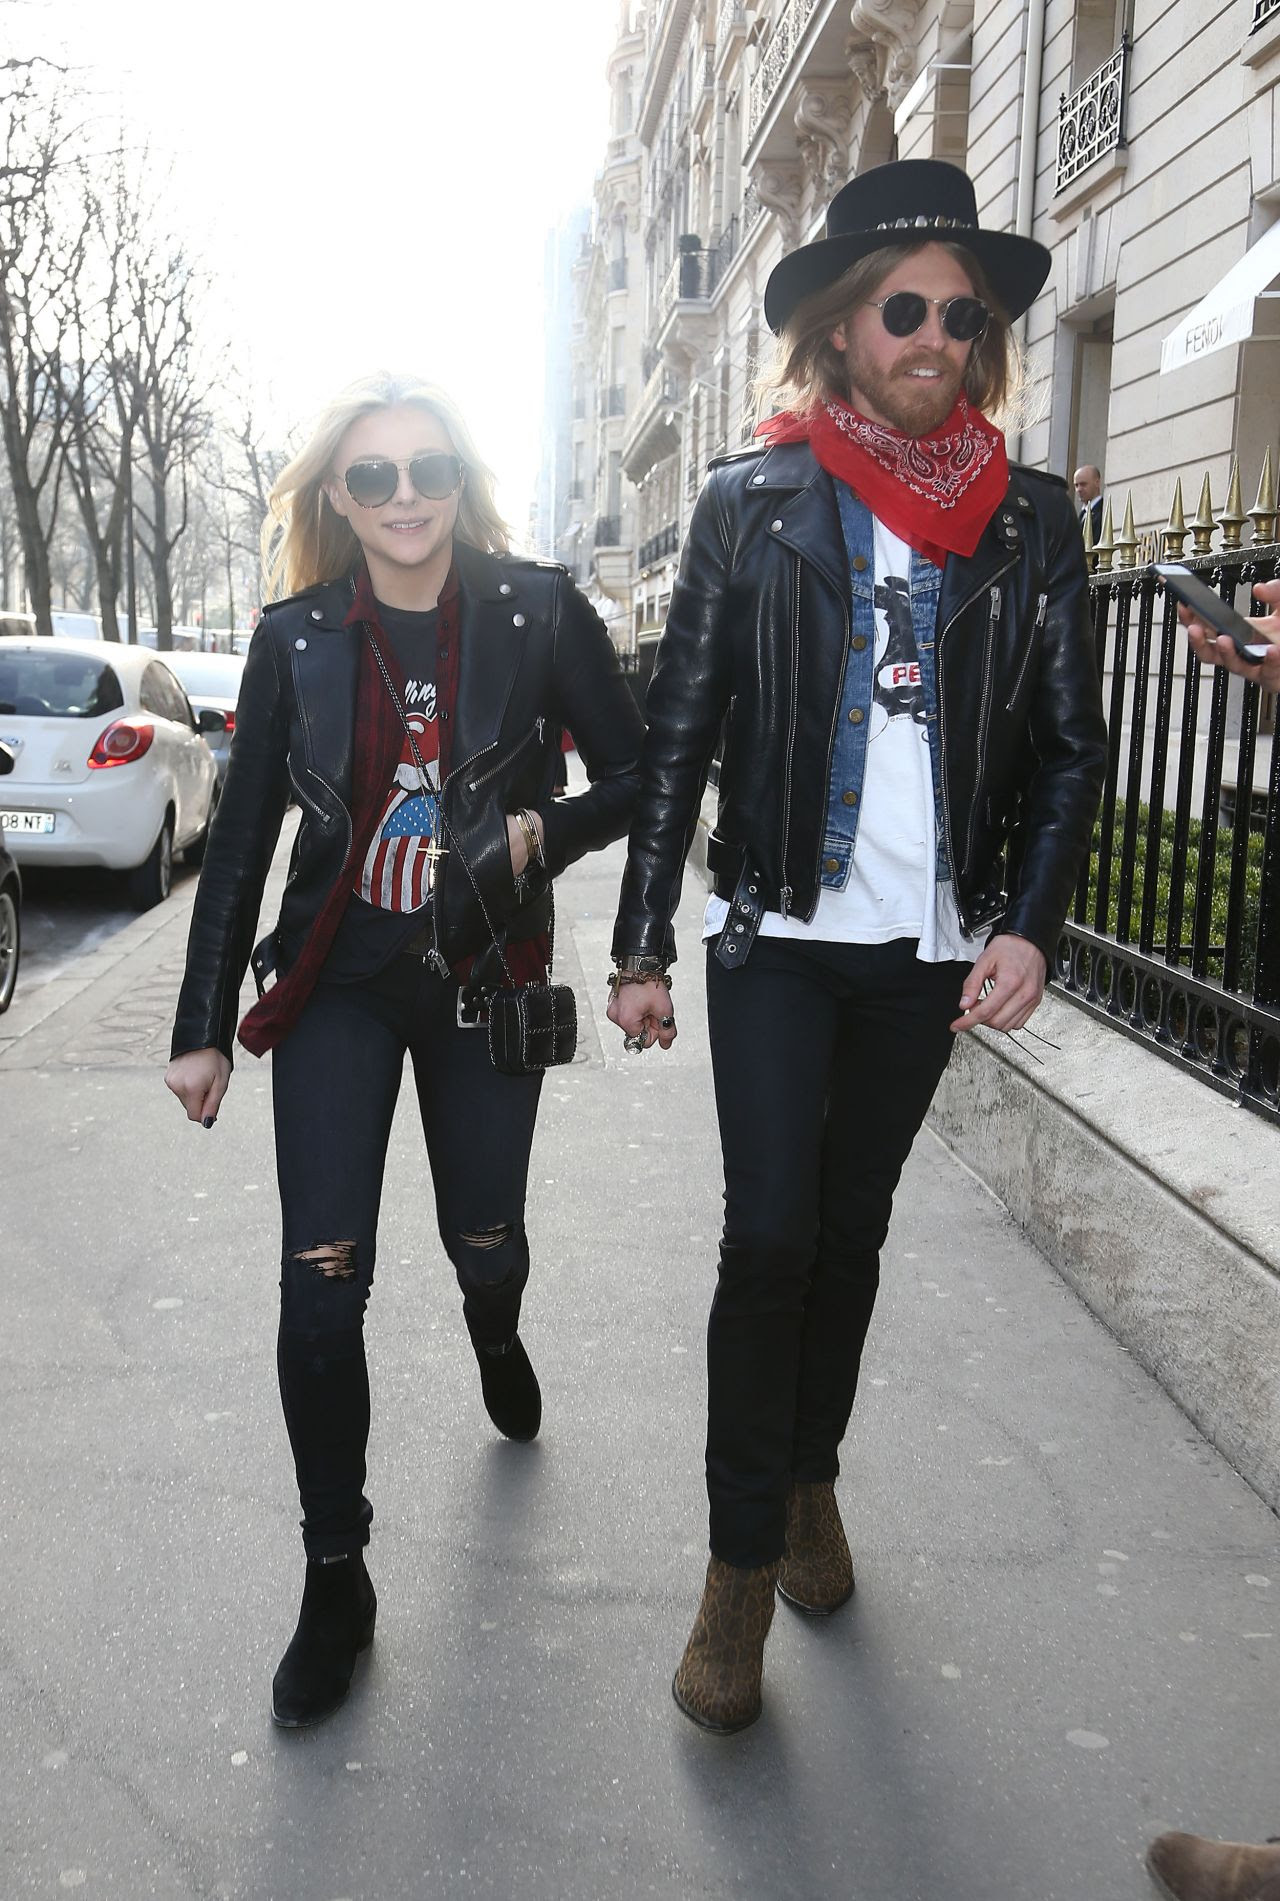 http://celebmafia.com/wp-content/uploads/2015/03/chloe-moretz-street-style-out-in-paris-march-2015_3.jpg